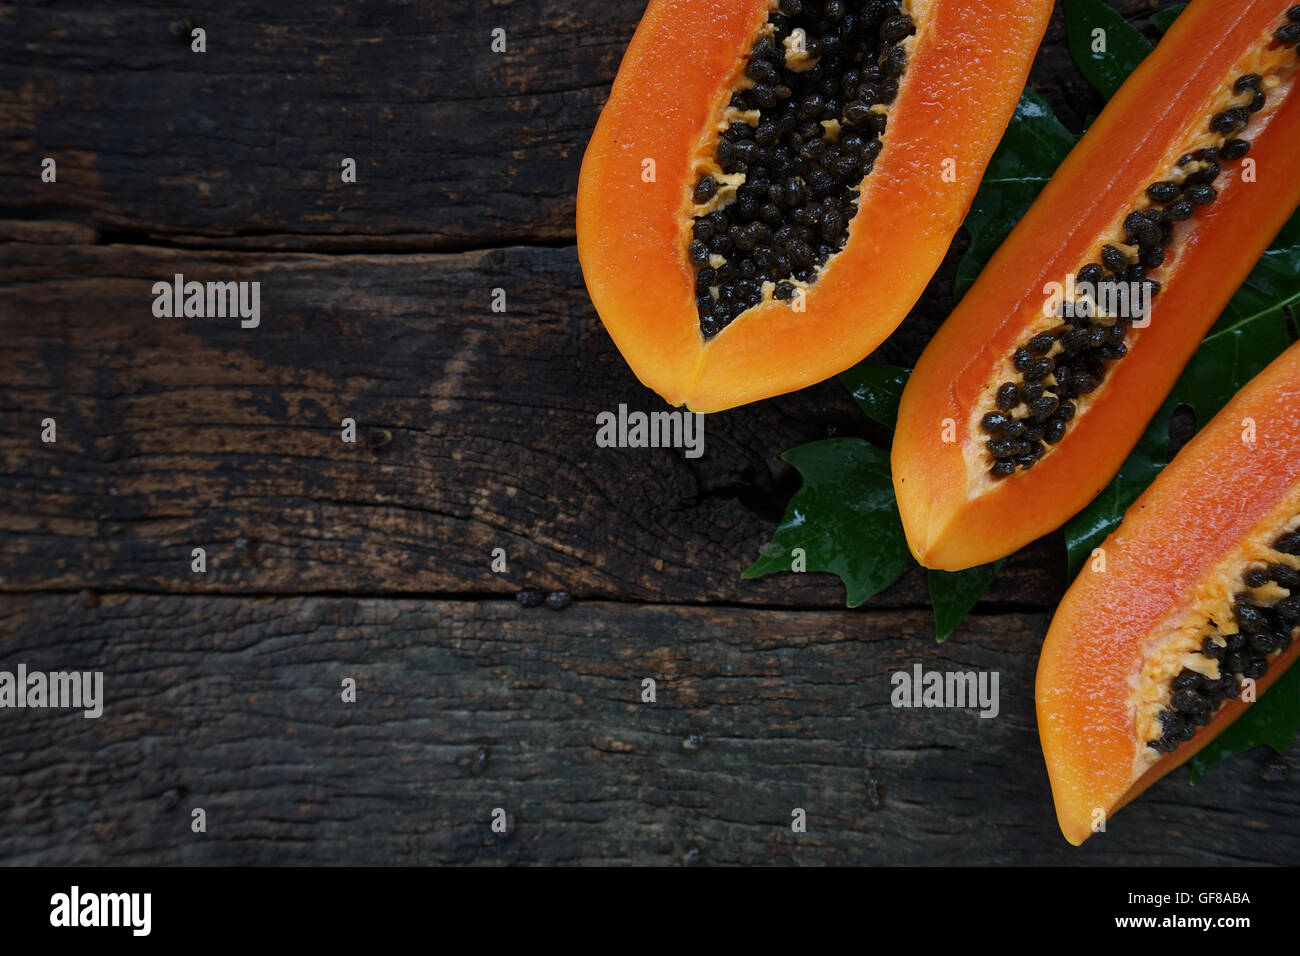 Top view Ripe papaya with green leaf on old wooden background. - Stock Image